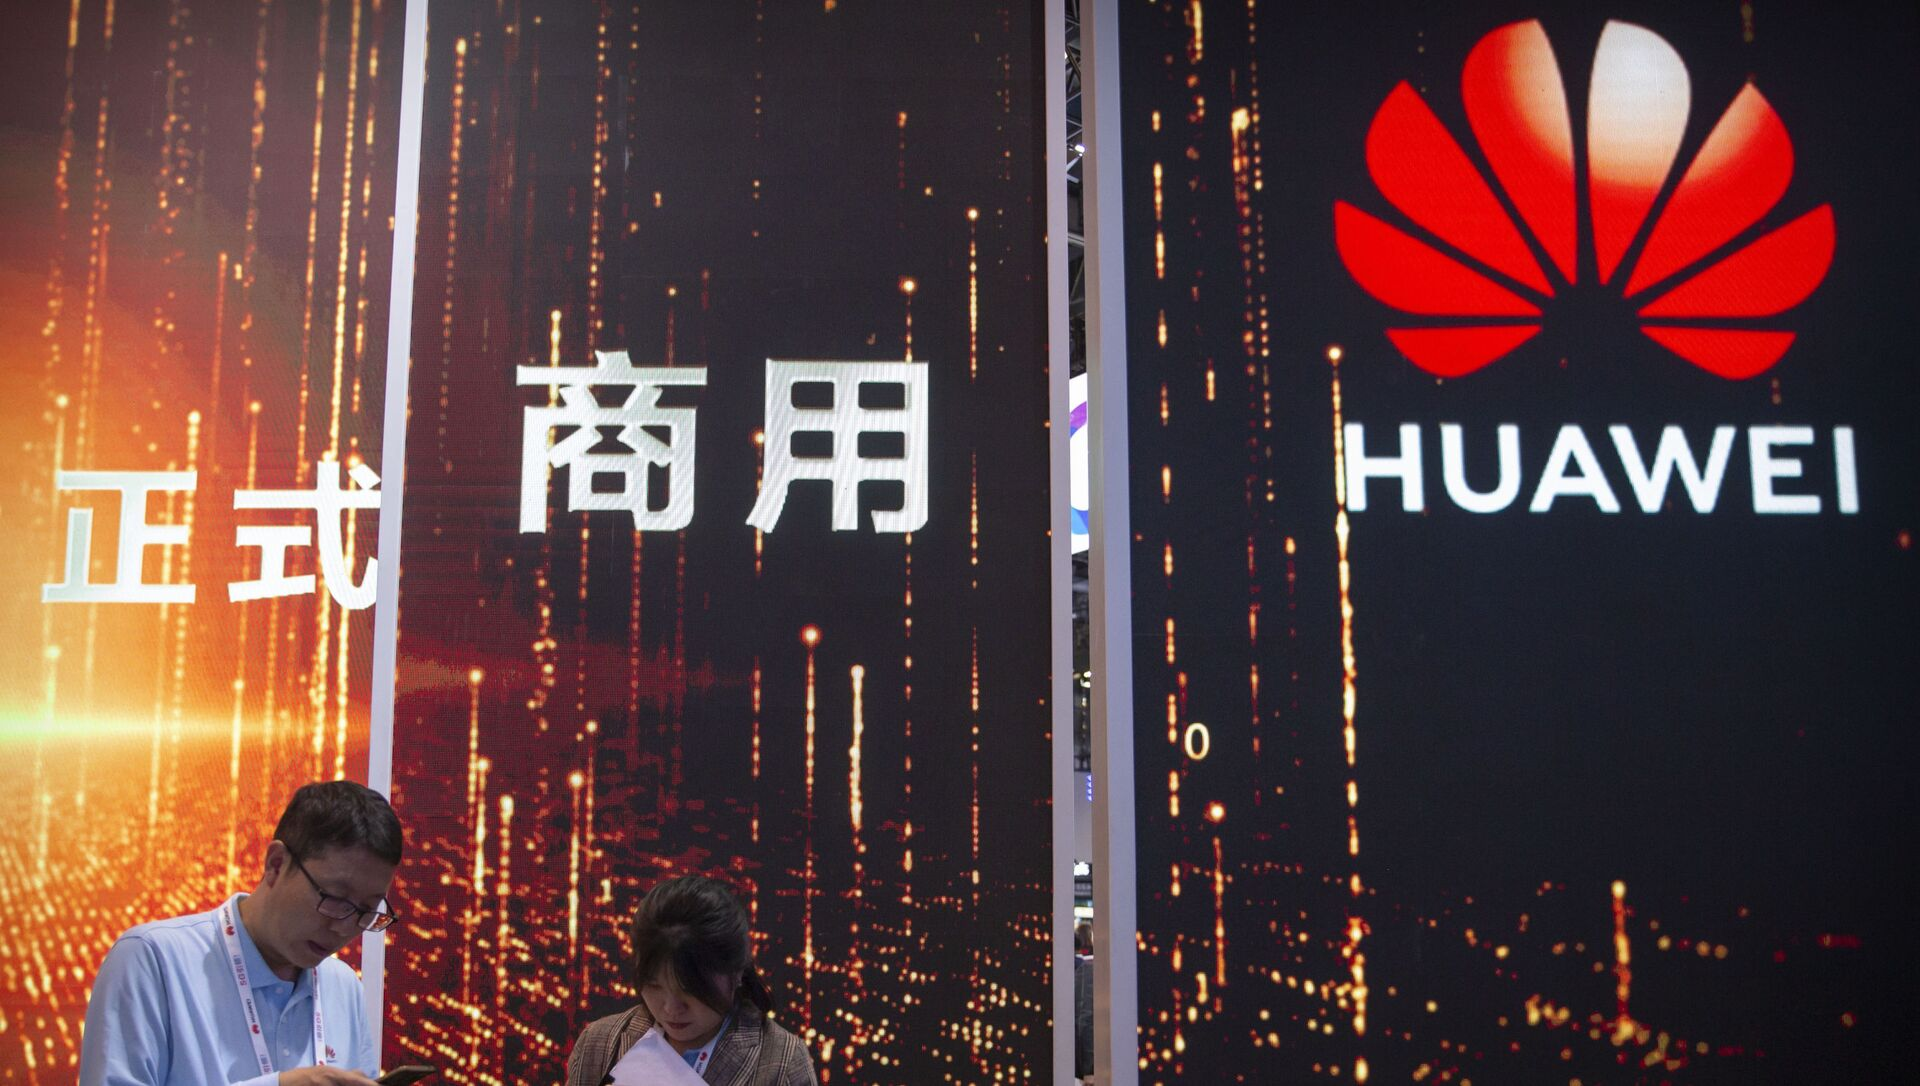 In this Oct. 31, 2019 photo, attendees use their smartphones near a Huawei booth at the PT Expo technology conference in Beijing. Chinese tech giant Huawei is racing to develop replacements for Google apps. U.S. sanctions imposed on security grounds block Huawei from using YouTube and other popular Google core apps. - Sputnik International, 1920, 21.07.2021